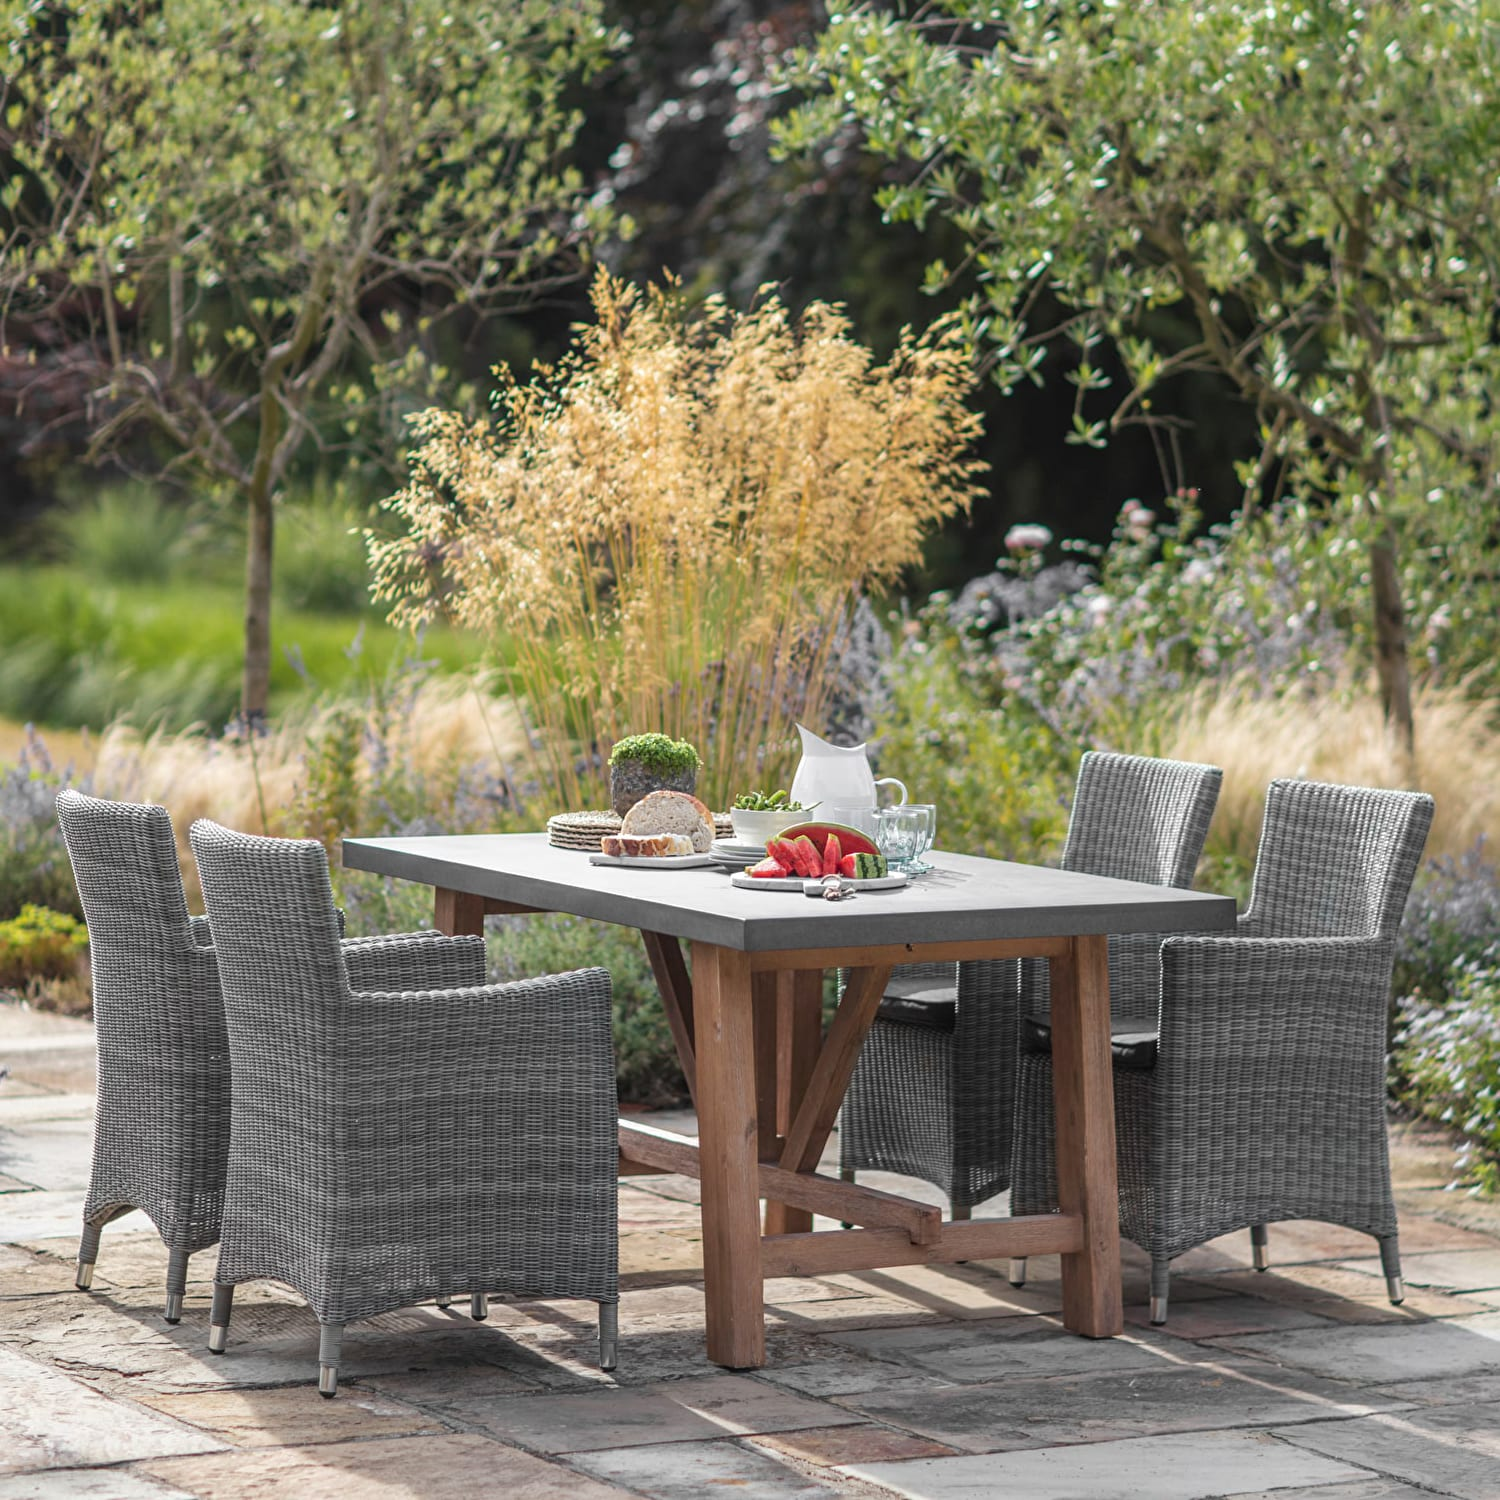 Chilson Table | Garden table and chairs